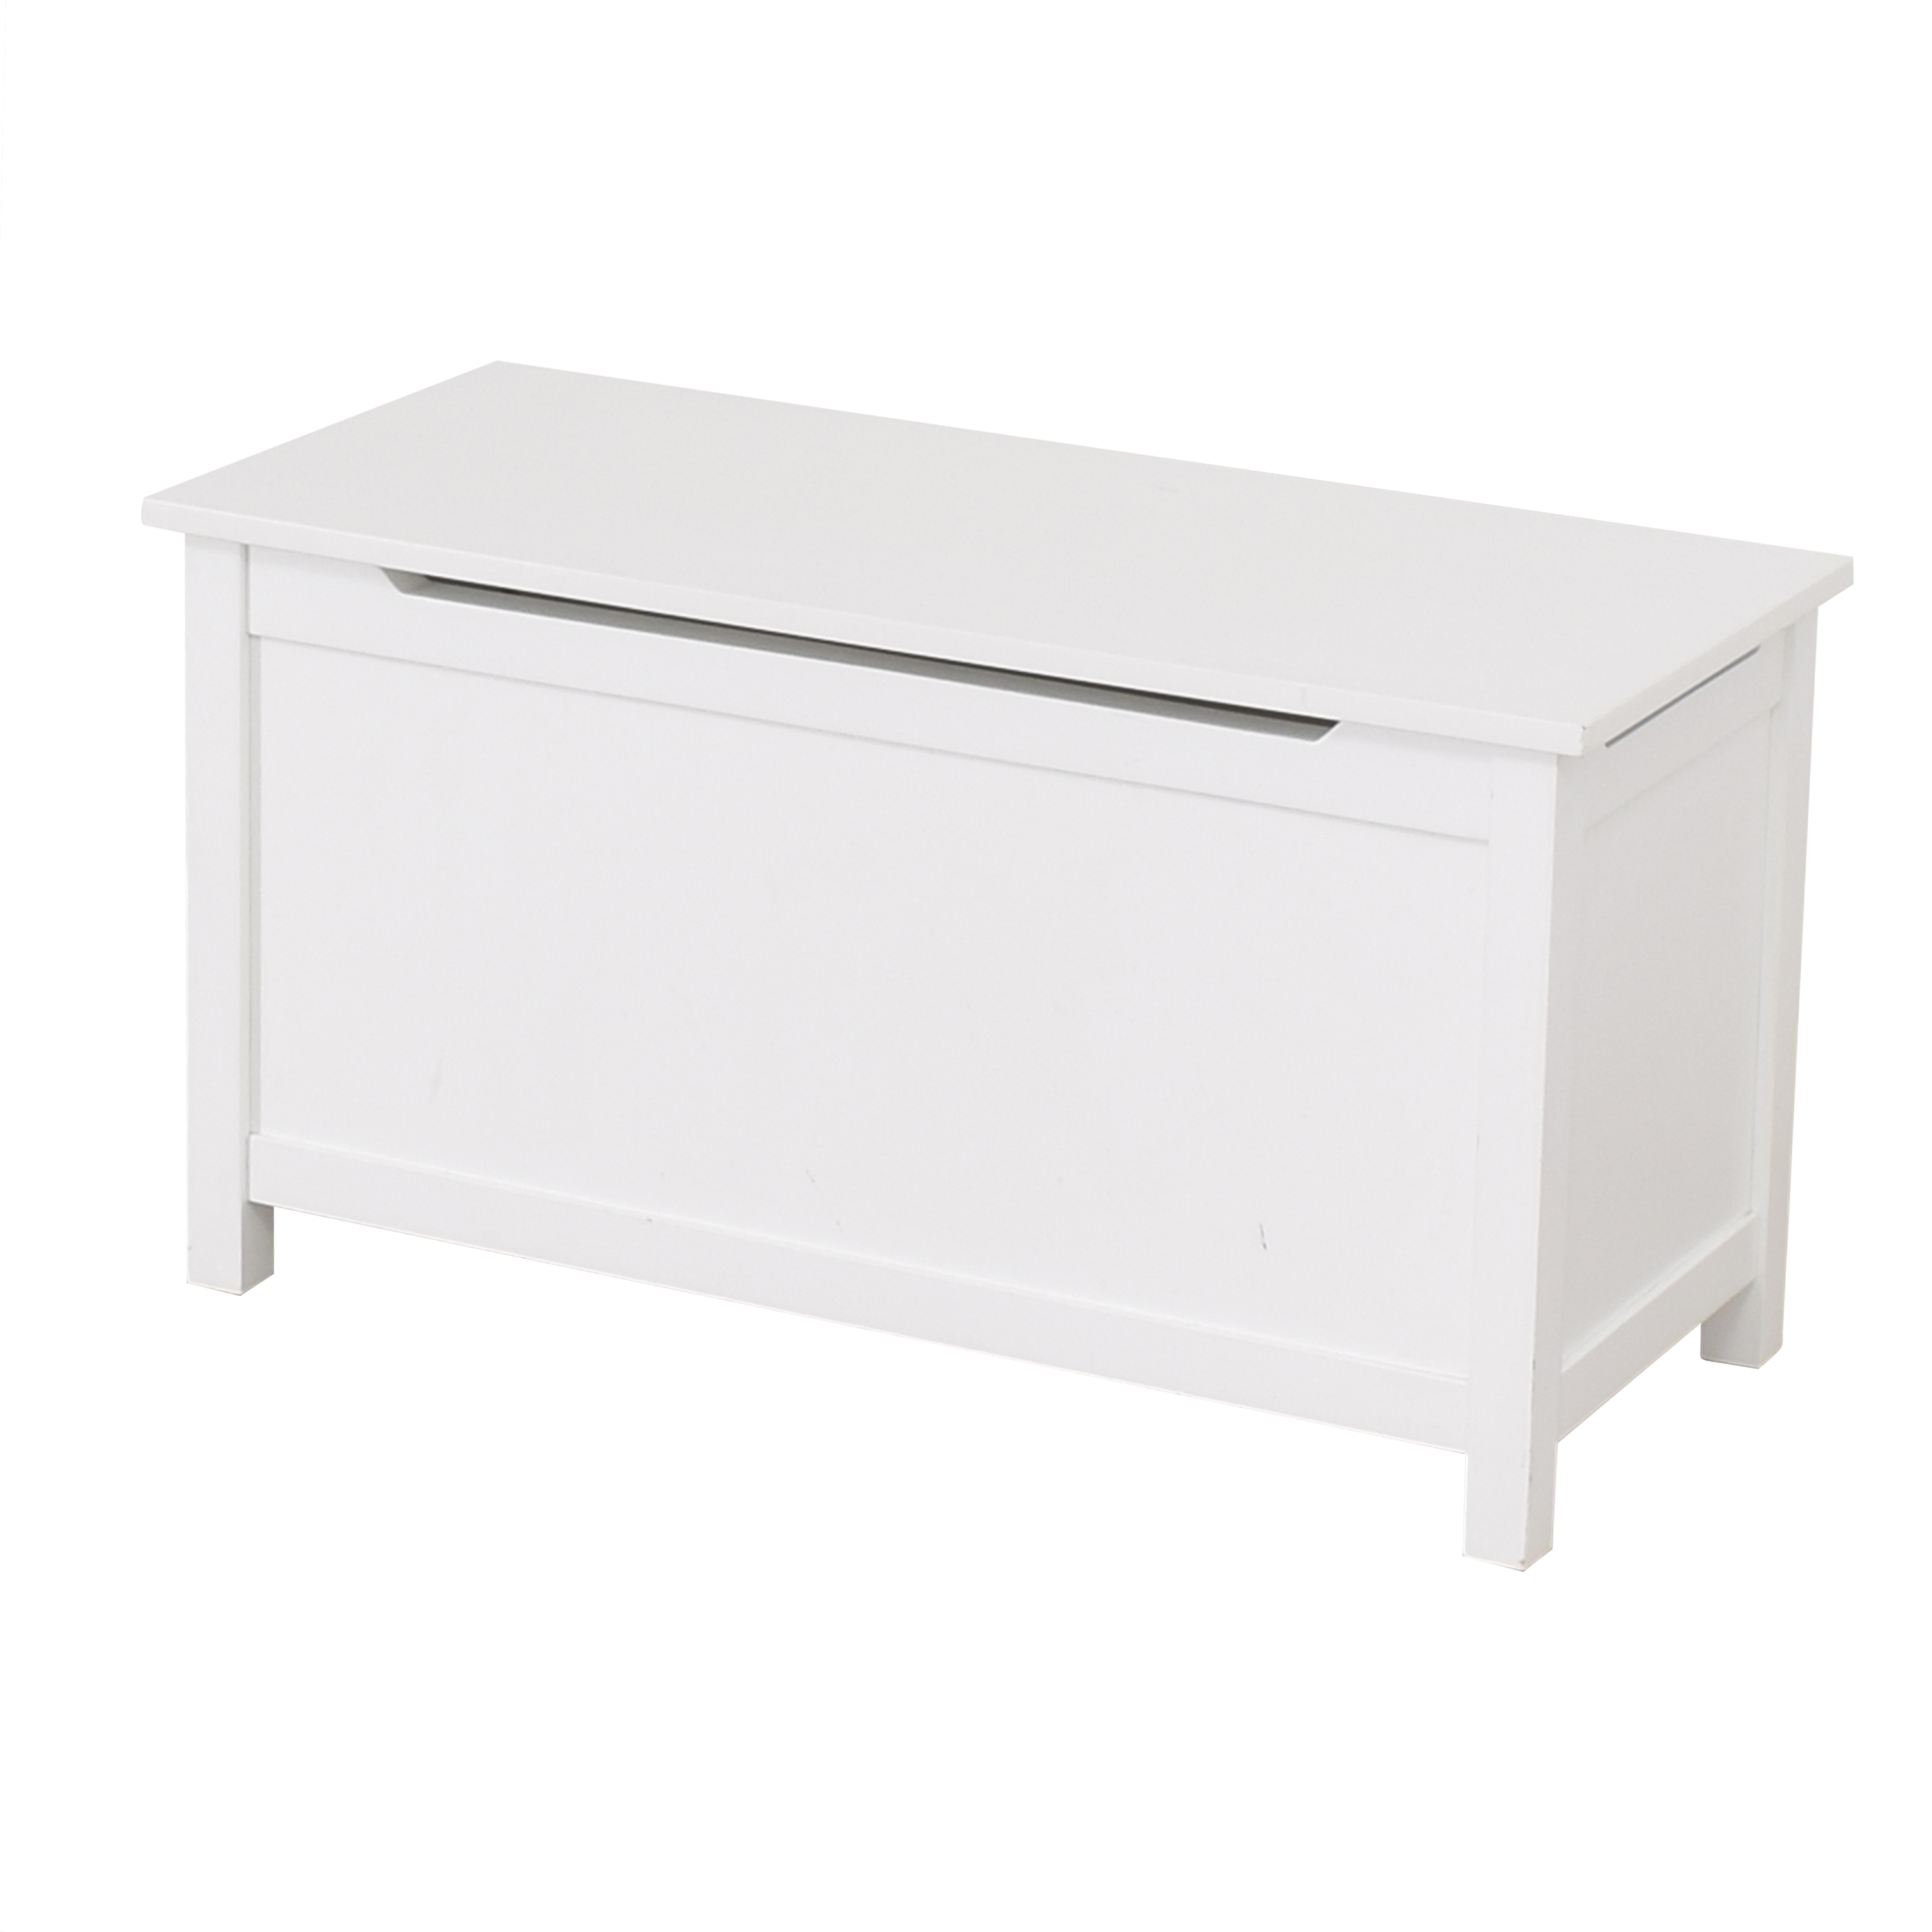 buy Land of Nod Land of Nod I'm Just a Wooden Toy Box online